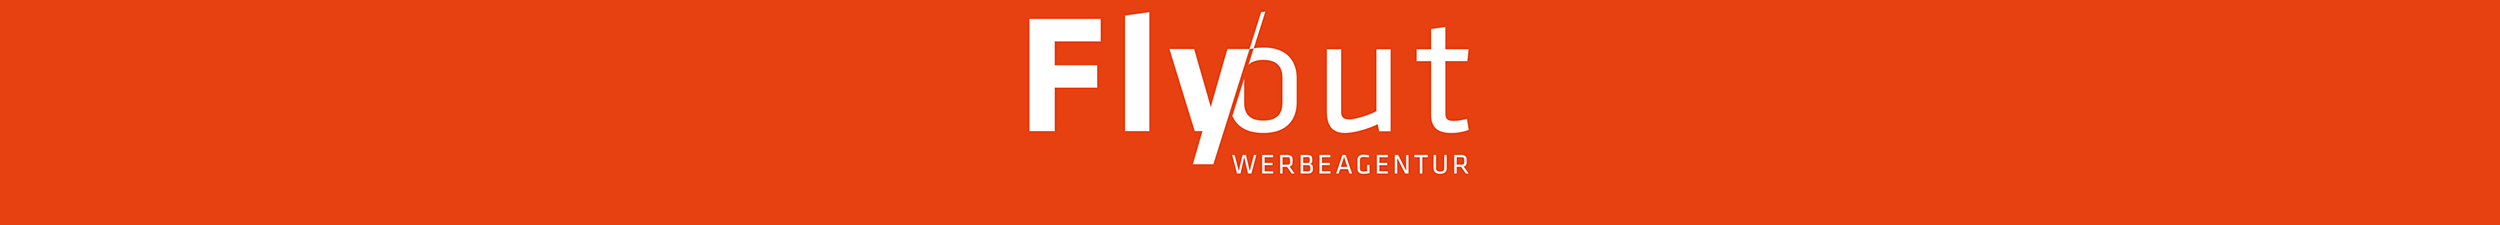 Fly-out Werbeagentur Logo